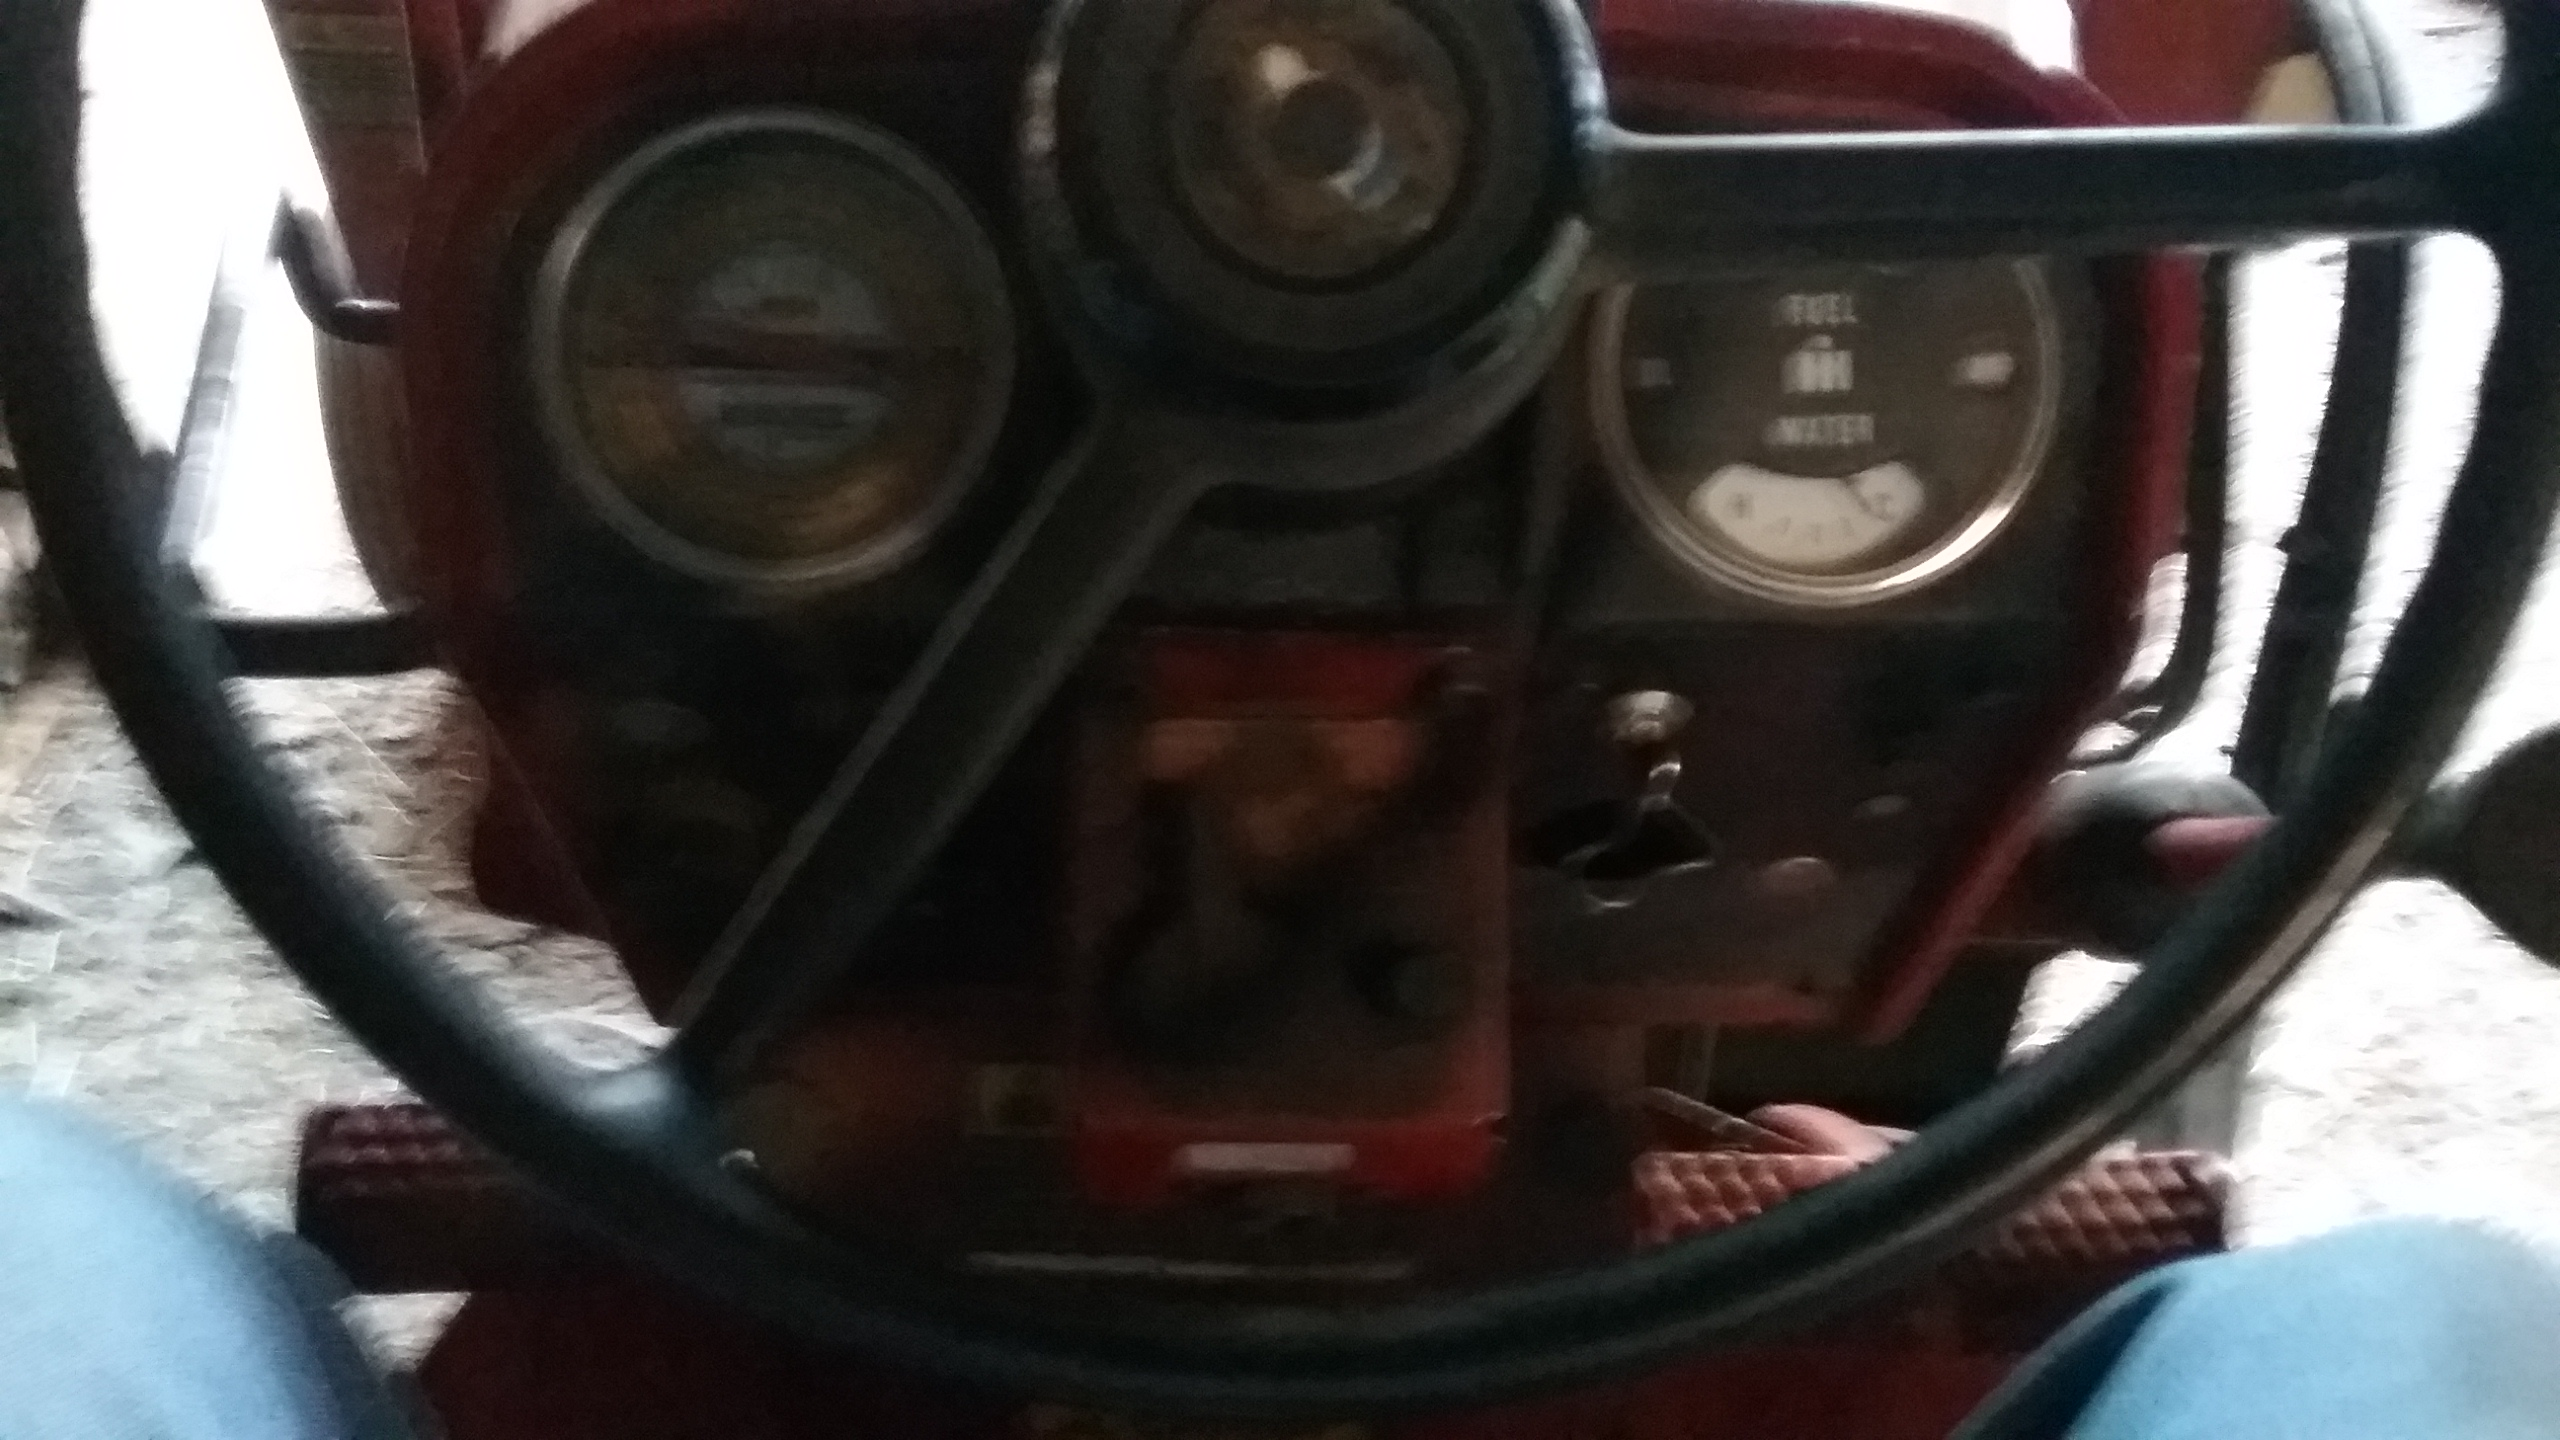 Turn Signals On Fender Tractors General Ih Red Power Magazine Topic Old Signal Switch Wiring 20171008 181202